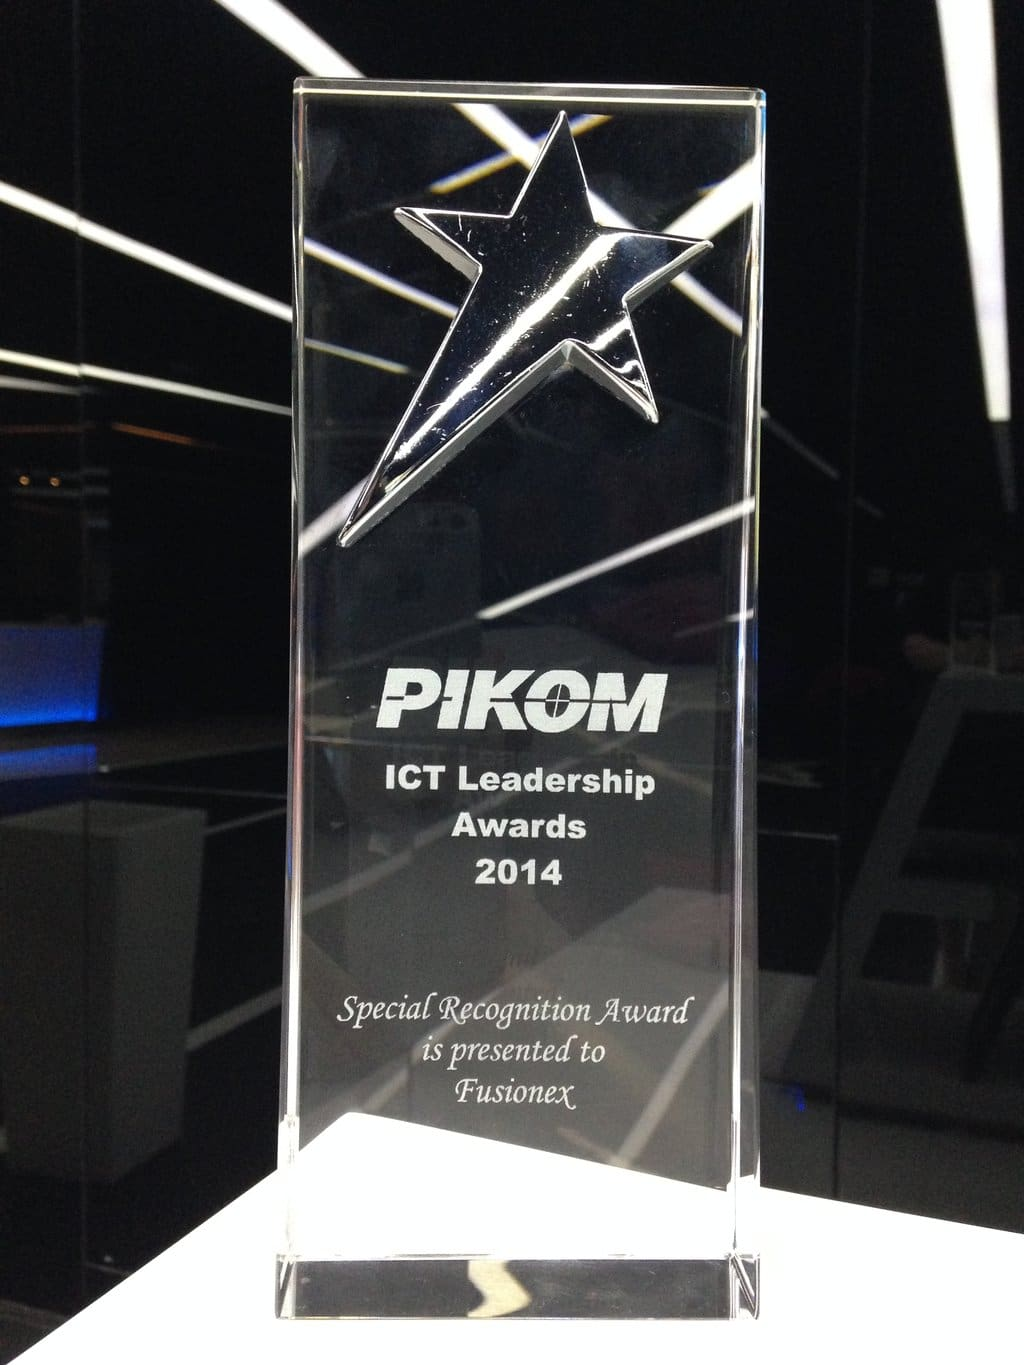 Special Recognition for Fusionex at the PIKOM ICT Leadership Awards 2014